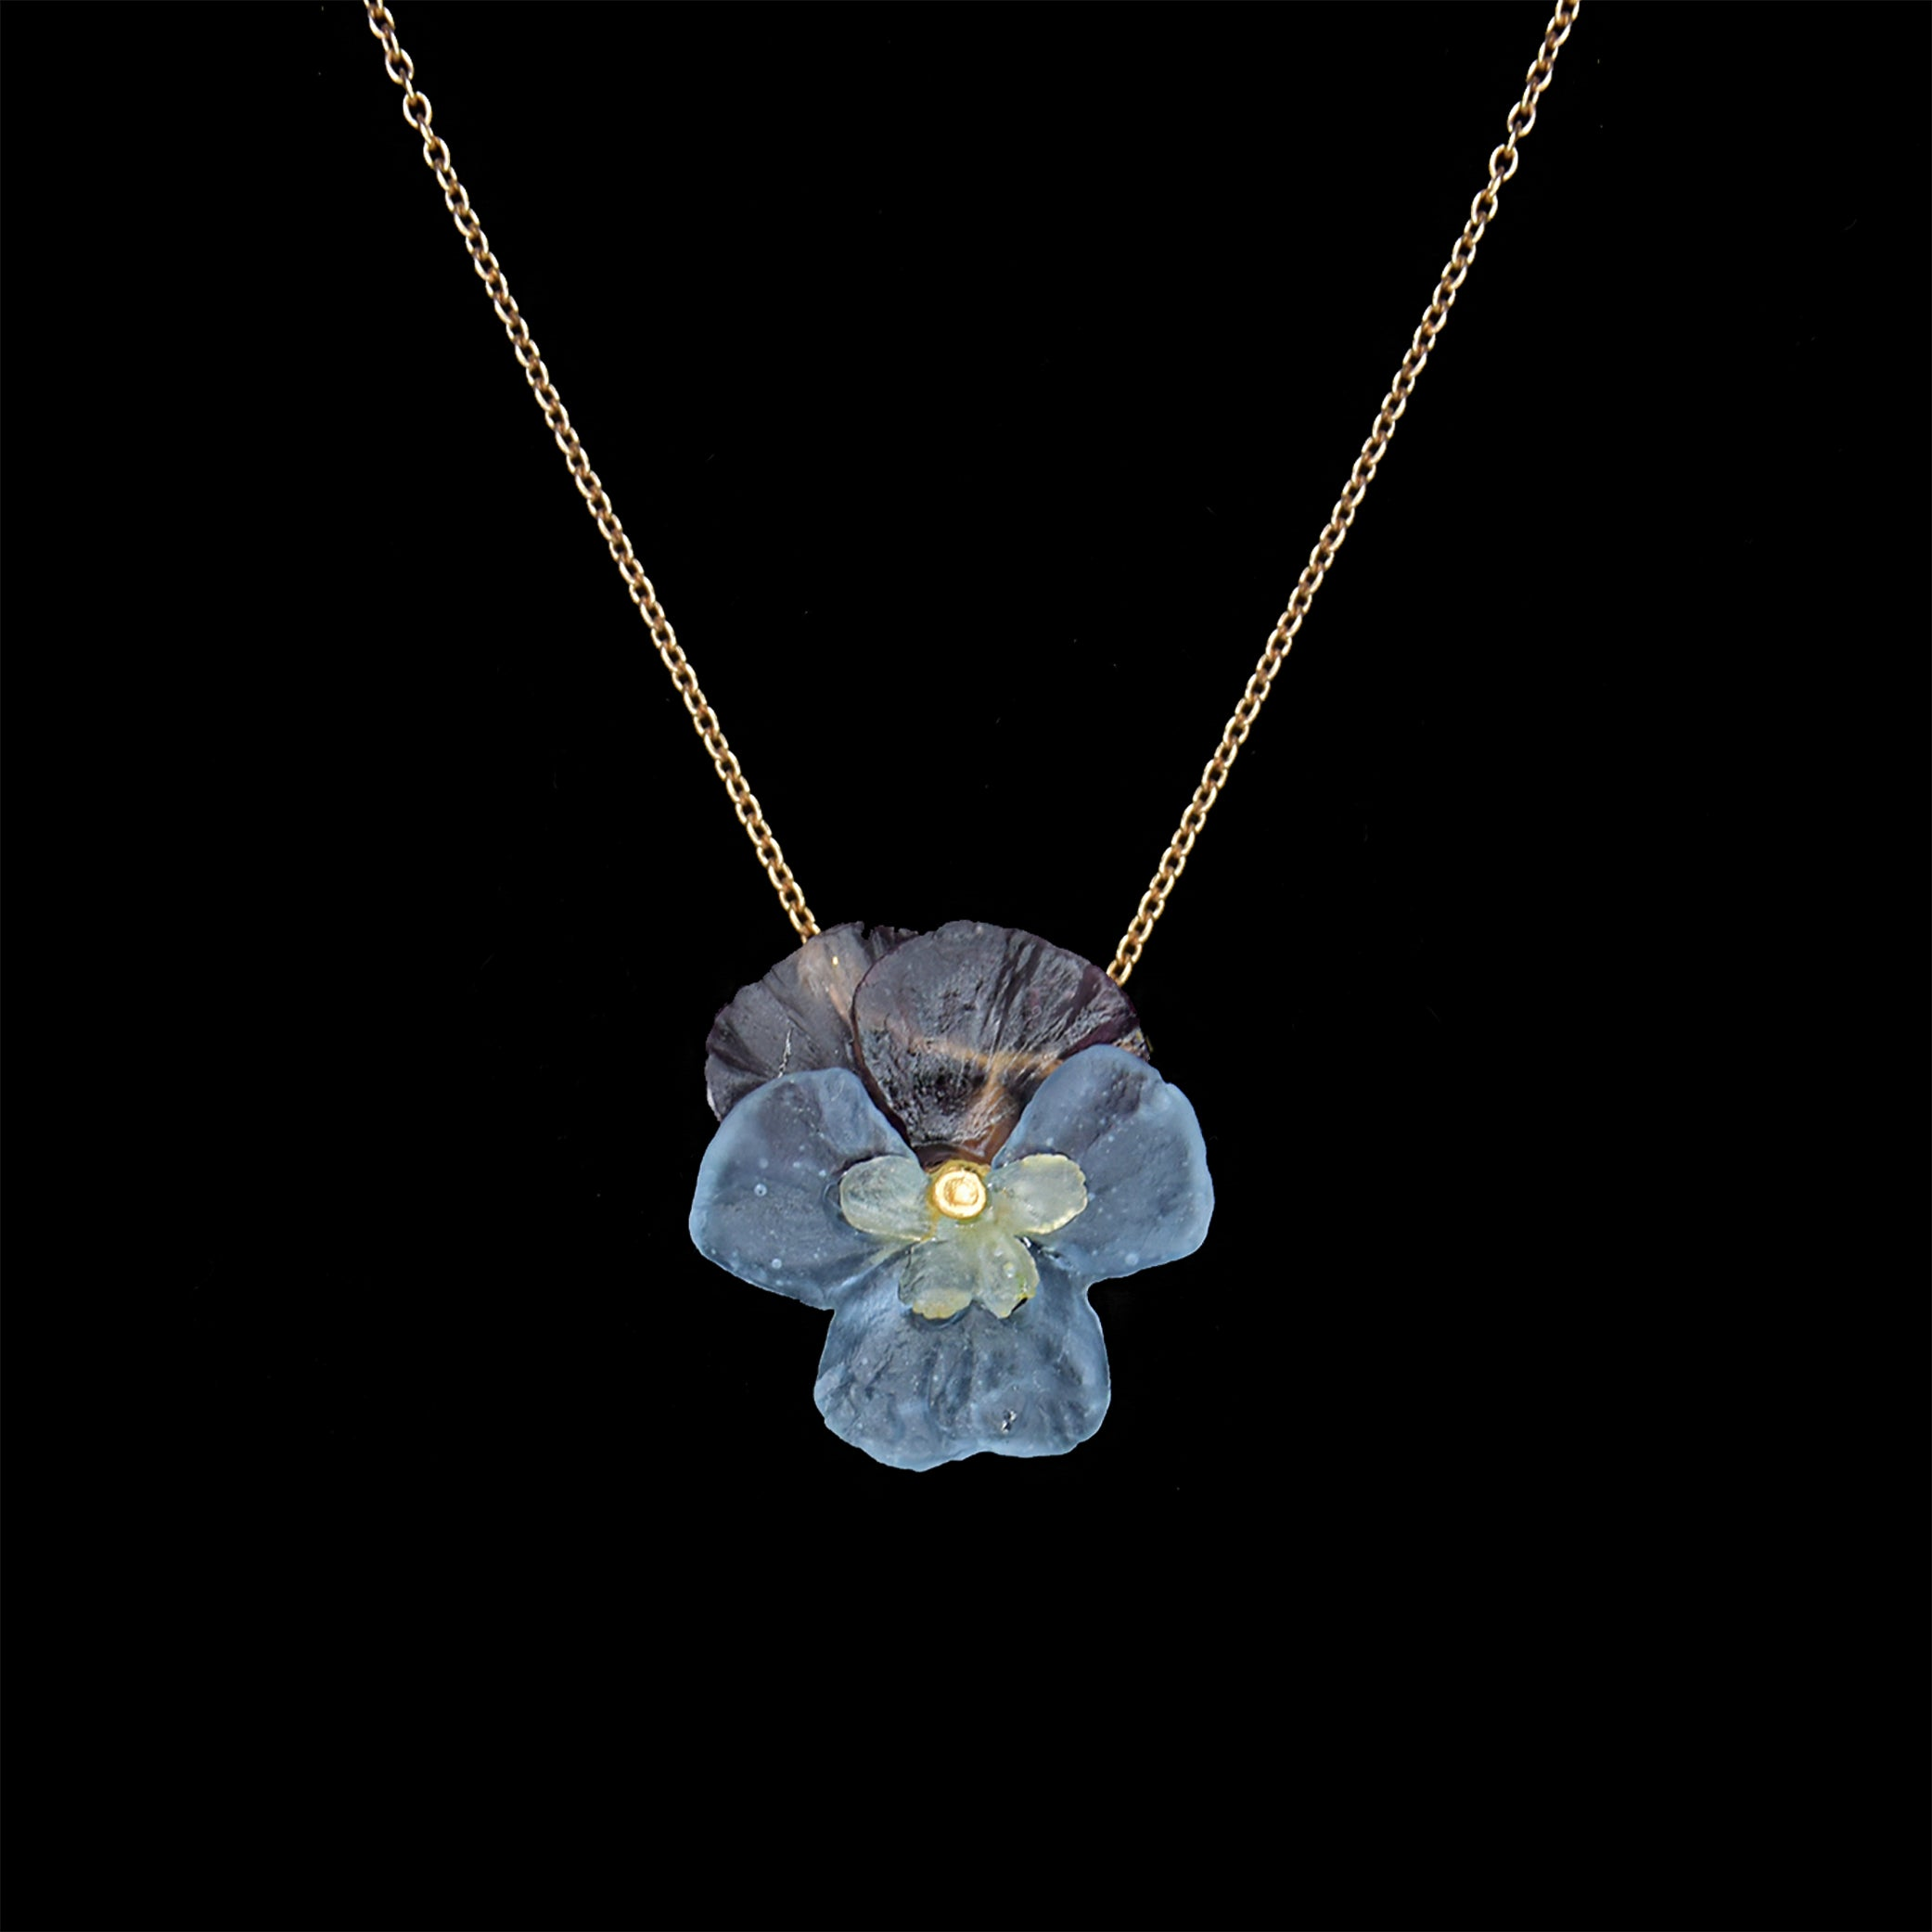 Pansies Pendant - Flower